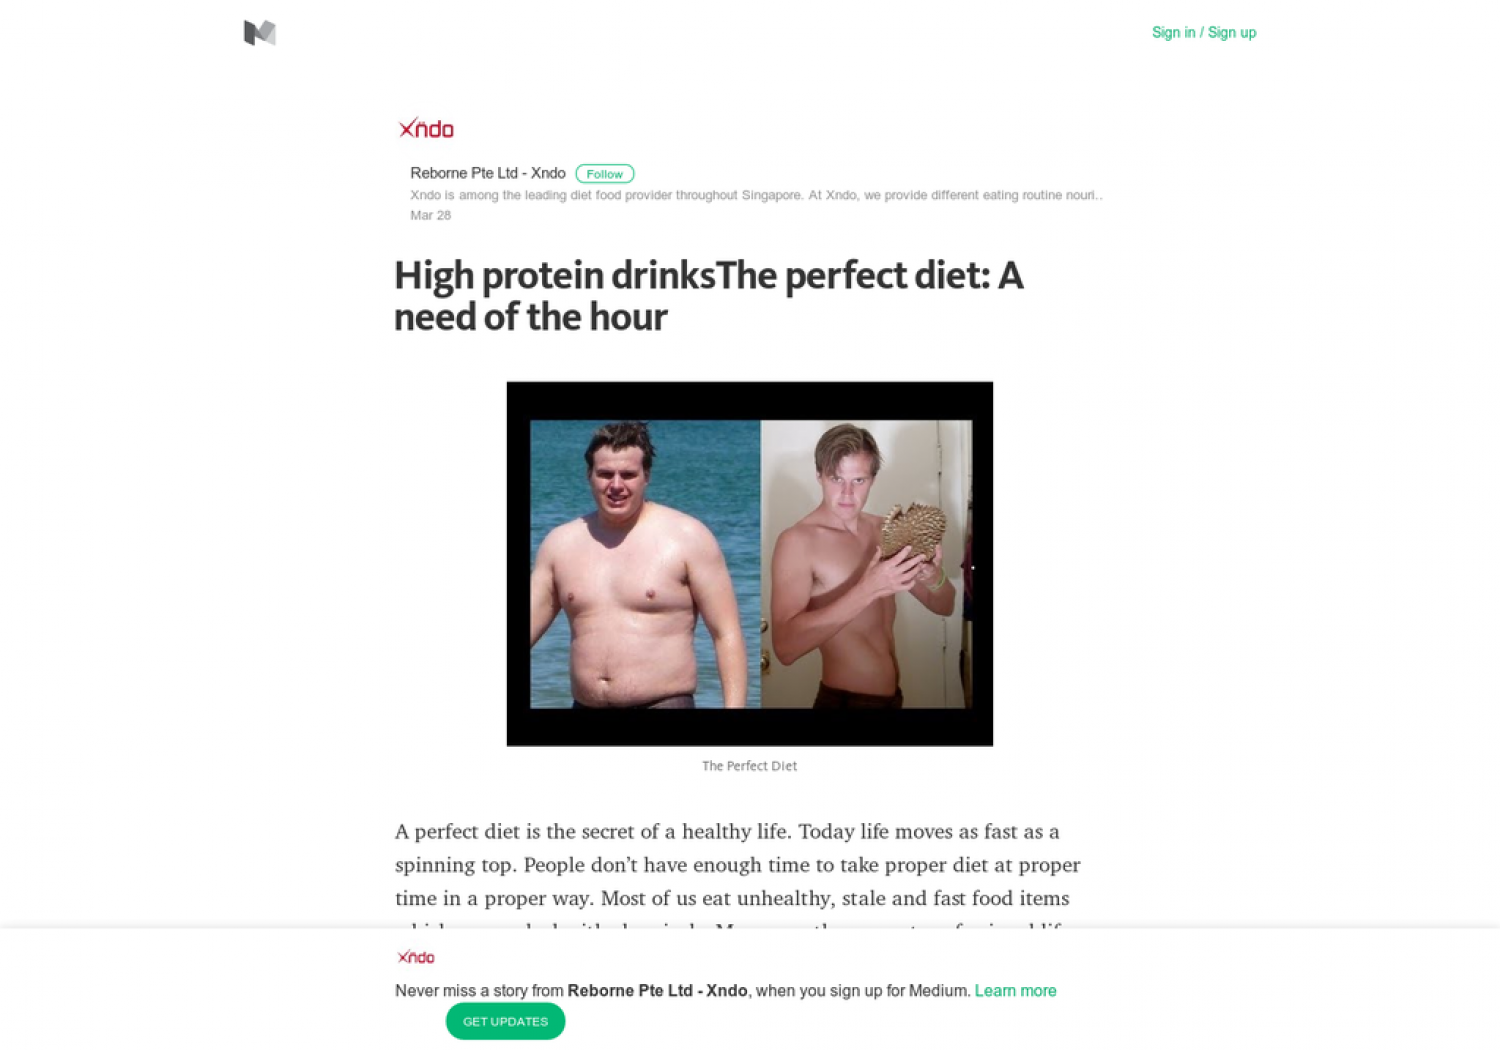 High protein drinksThe perfect diet: A need of the hour Infographic